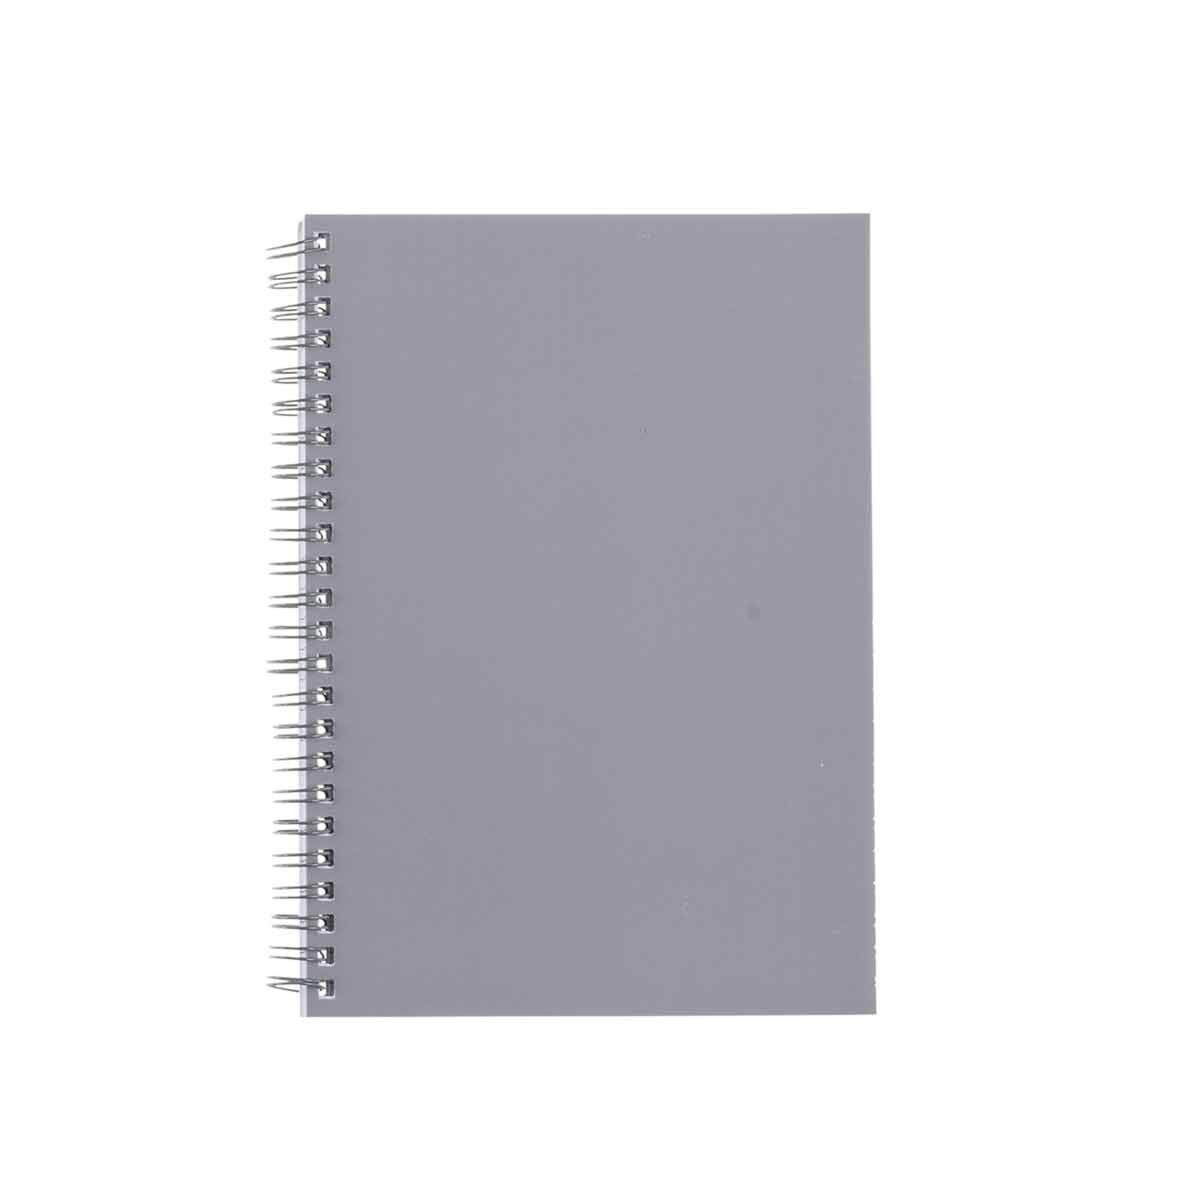 Ryman Pastel Essentials Notebook Ruled A5 Grey